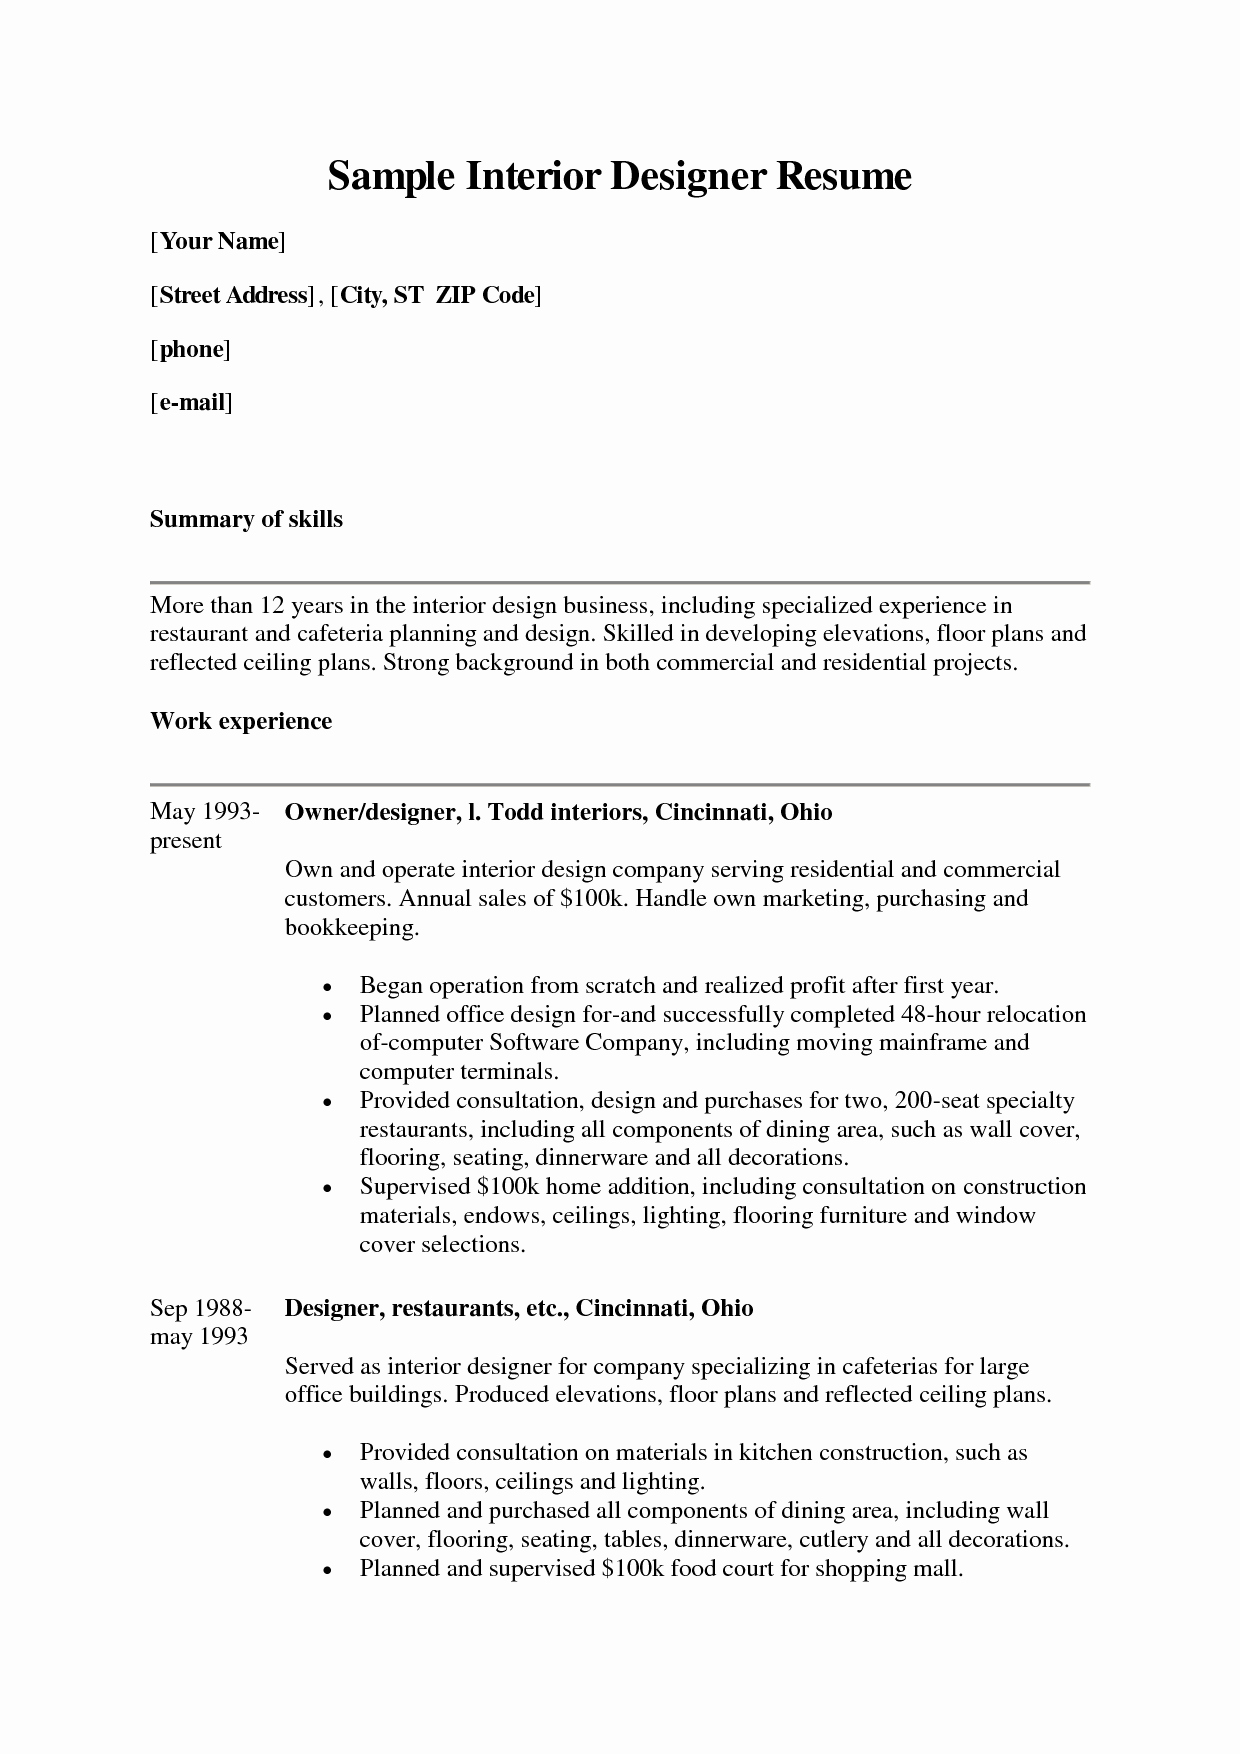 Interior Design Resume Template Elegant Career Objective for Interior Designer